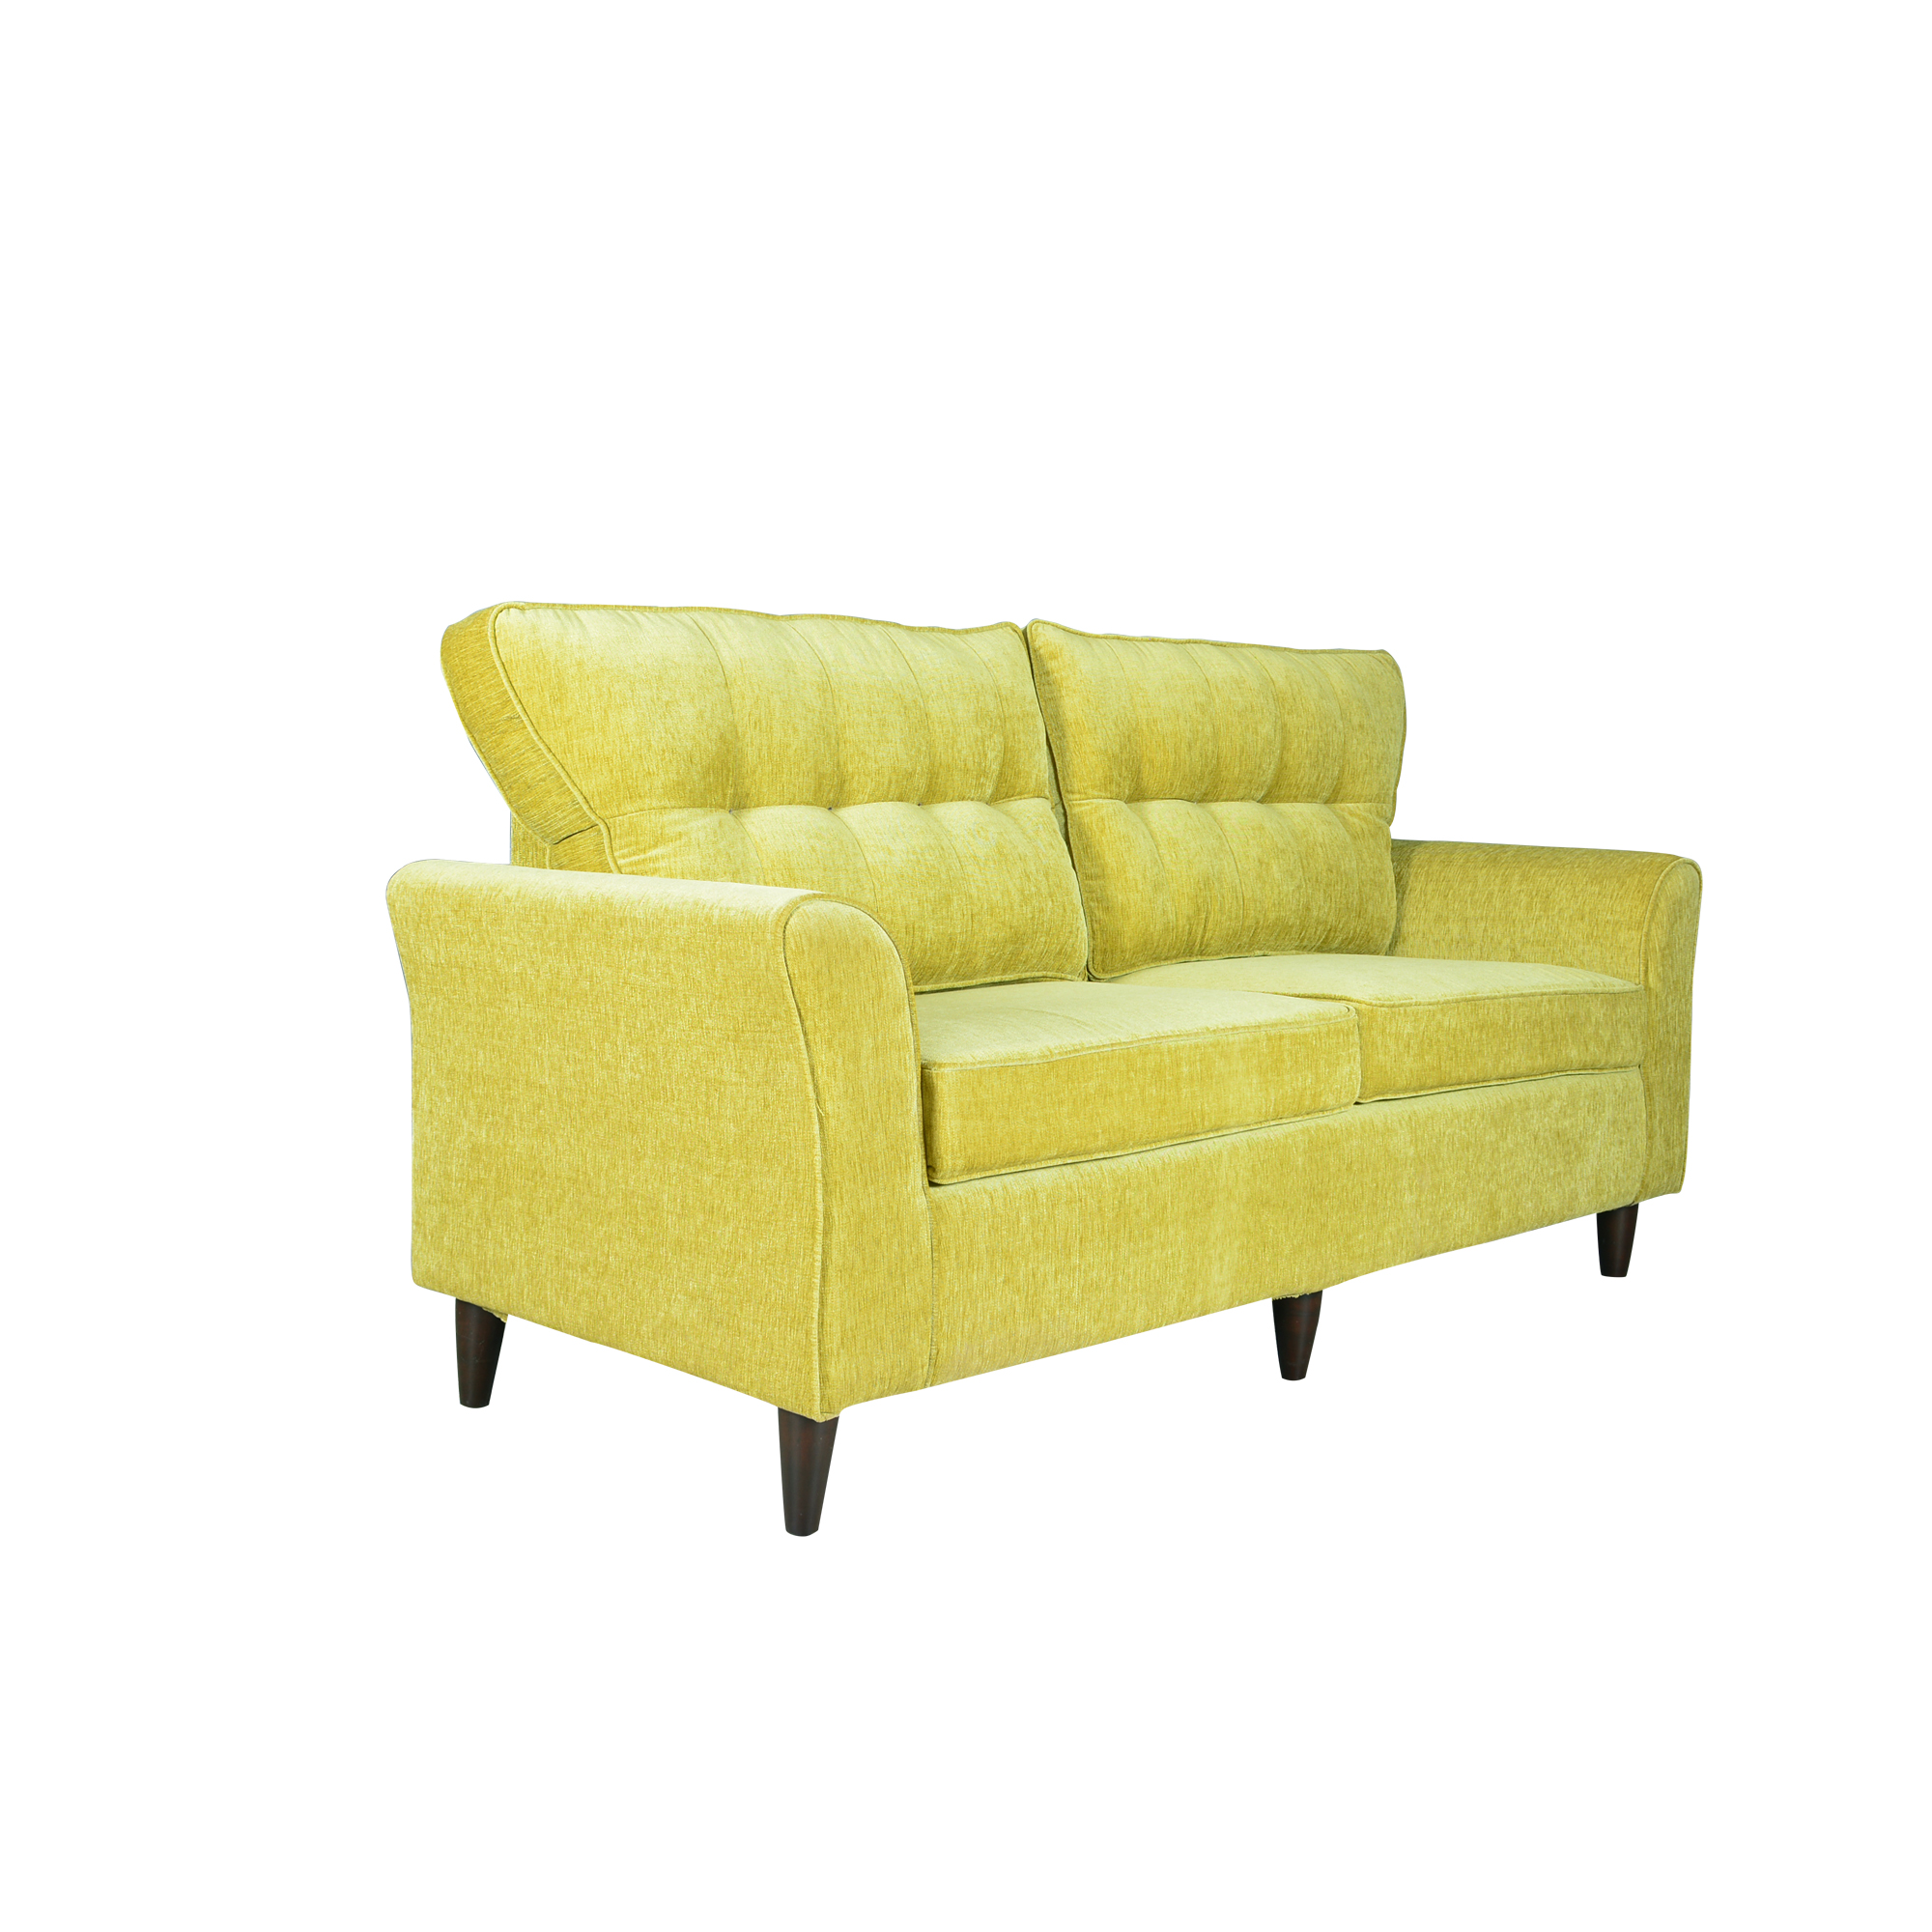 Bellevue Upholstered Sofa In Fabric And Teakwood Finesse Interio